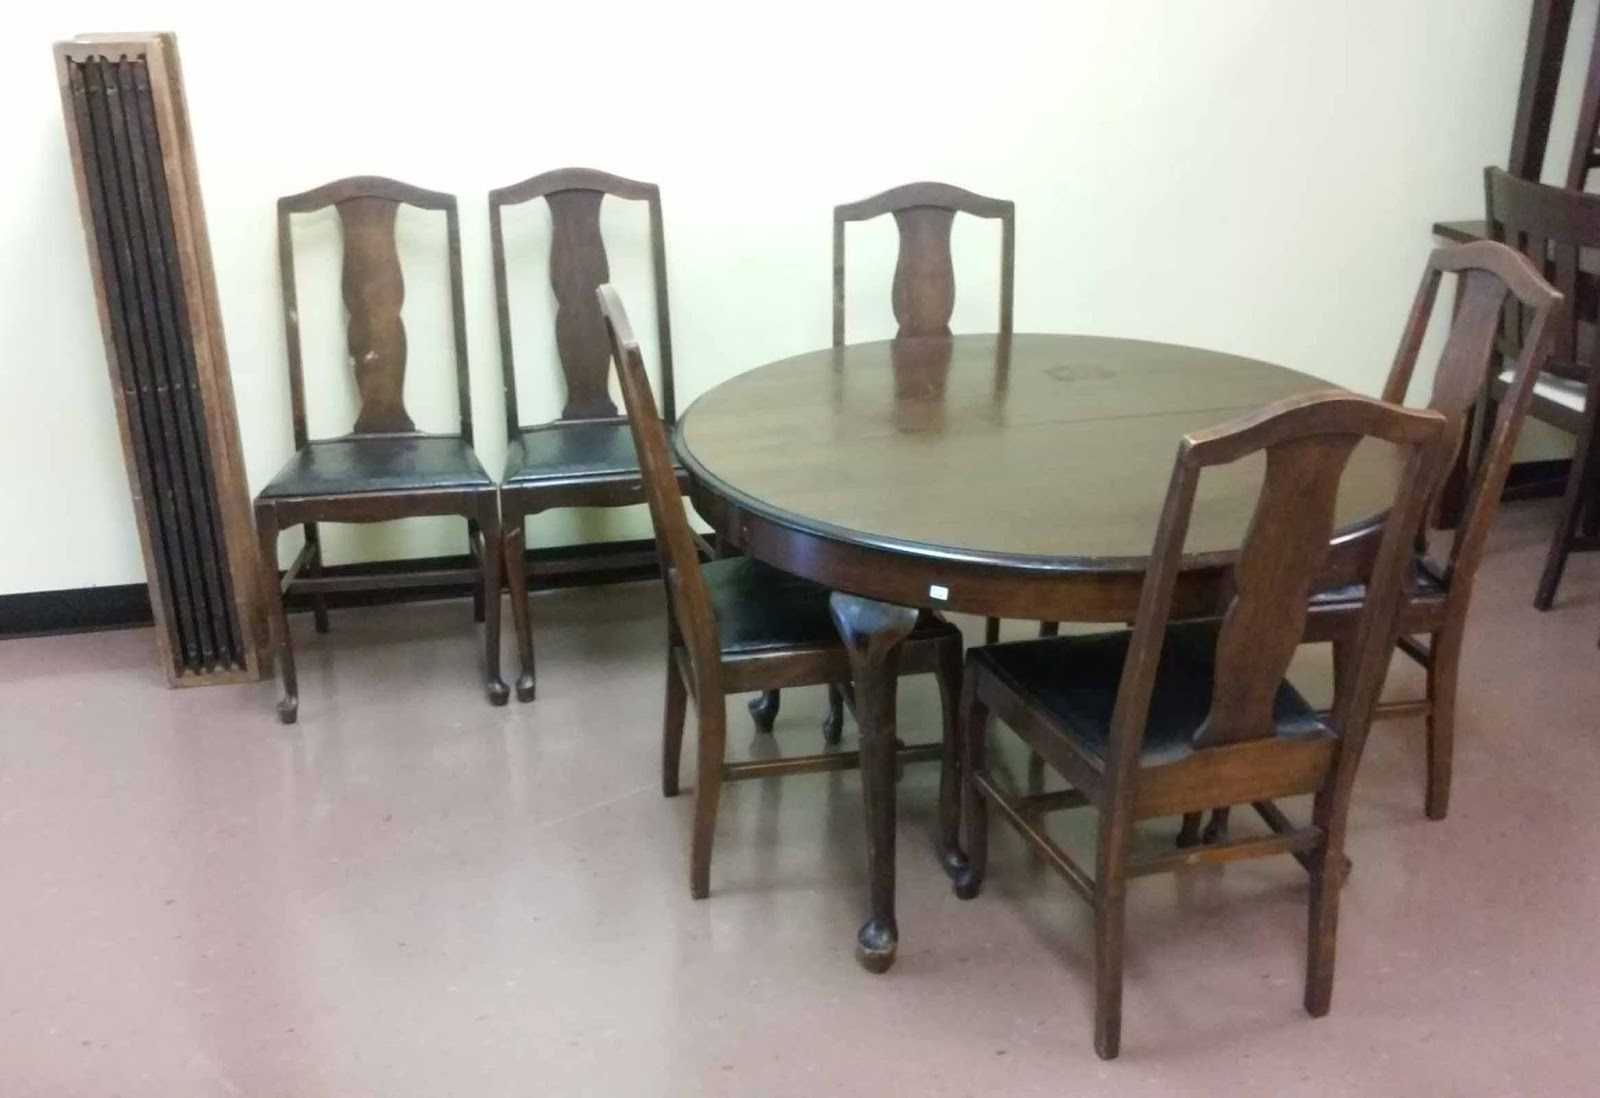 Uhuru furniture collectibles sold hickory chair co American classic furniture company